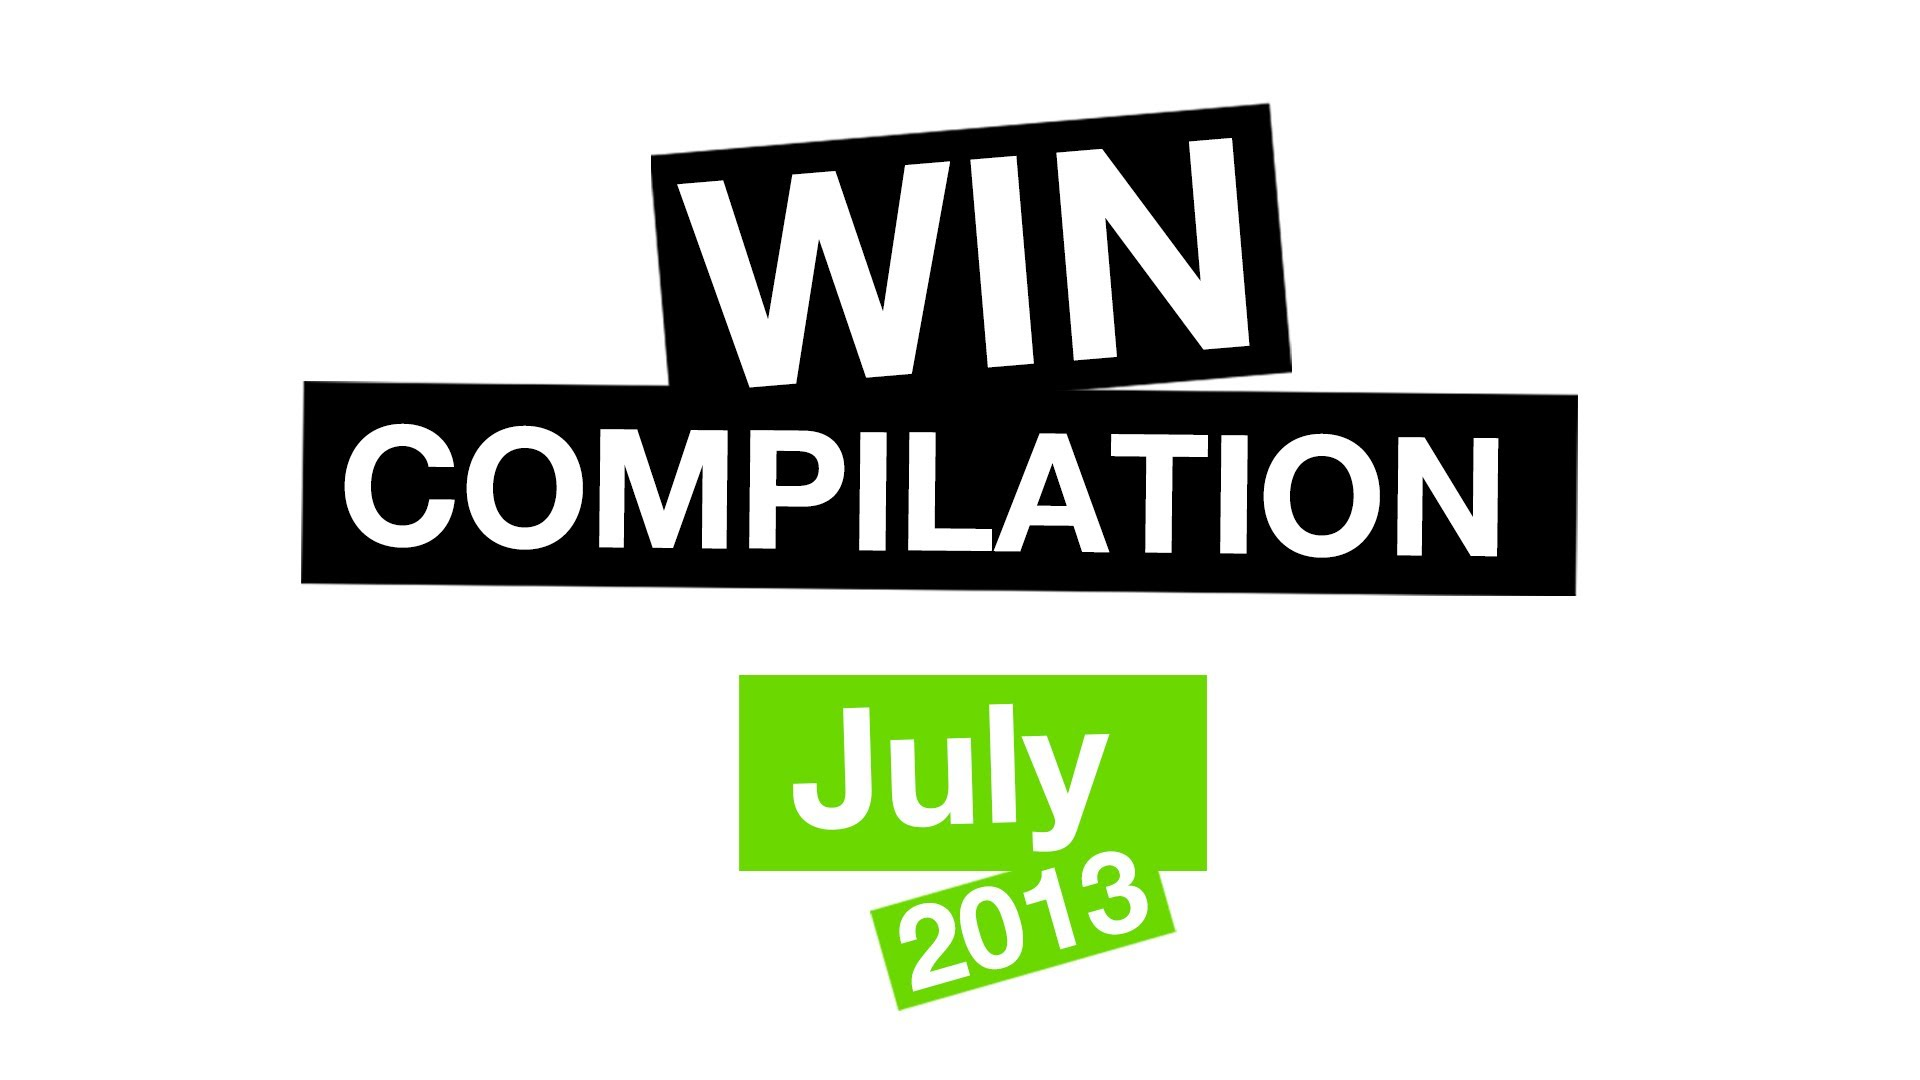 WIN Compilation July 2013